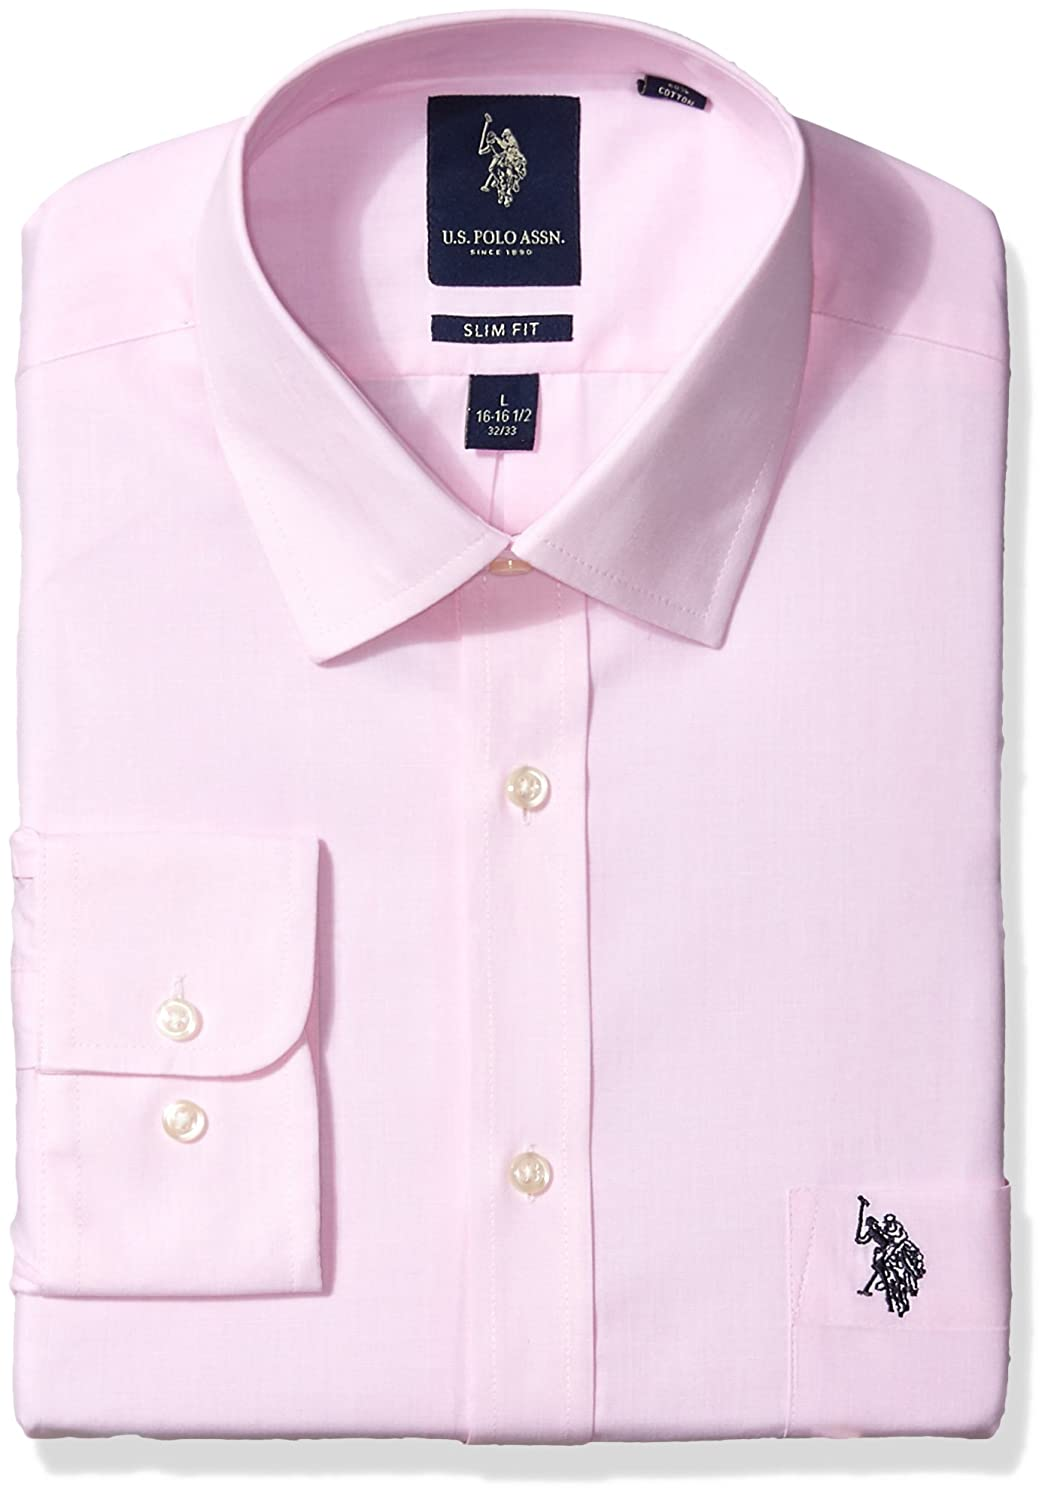 c4a003ca83947 U.S. Polo Assn. Men s Slim Fit Solid Semi Spread Collar Dress Shirt ...